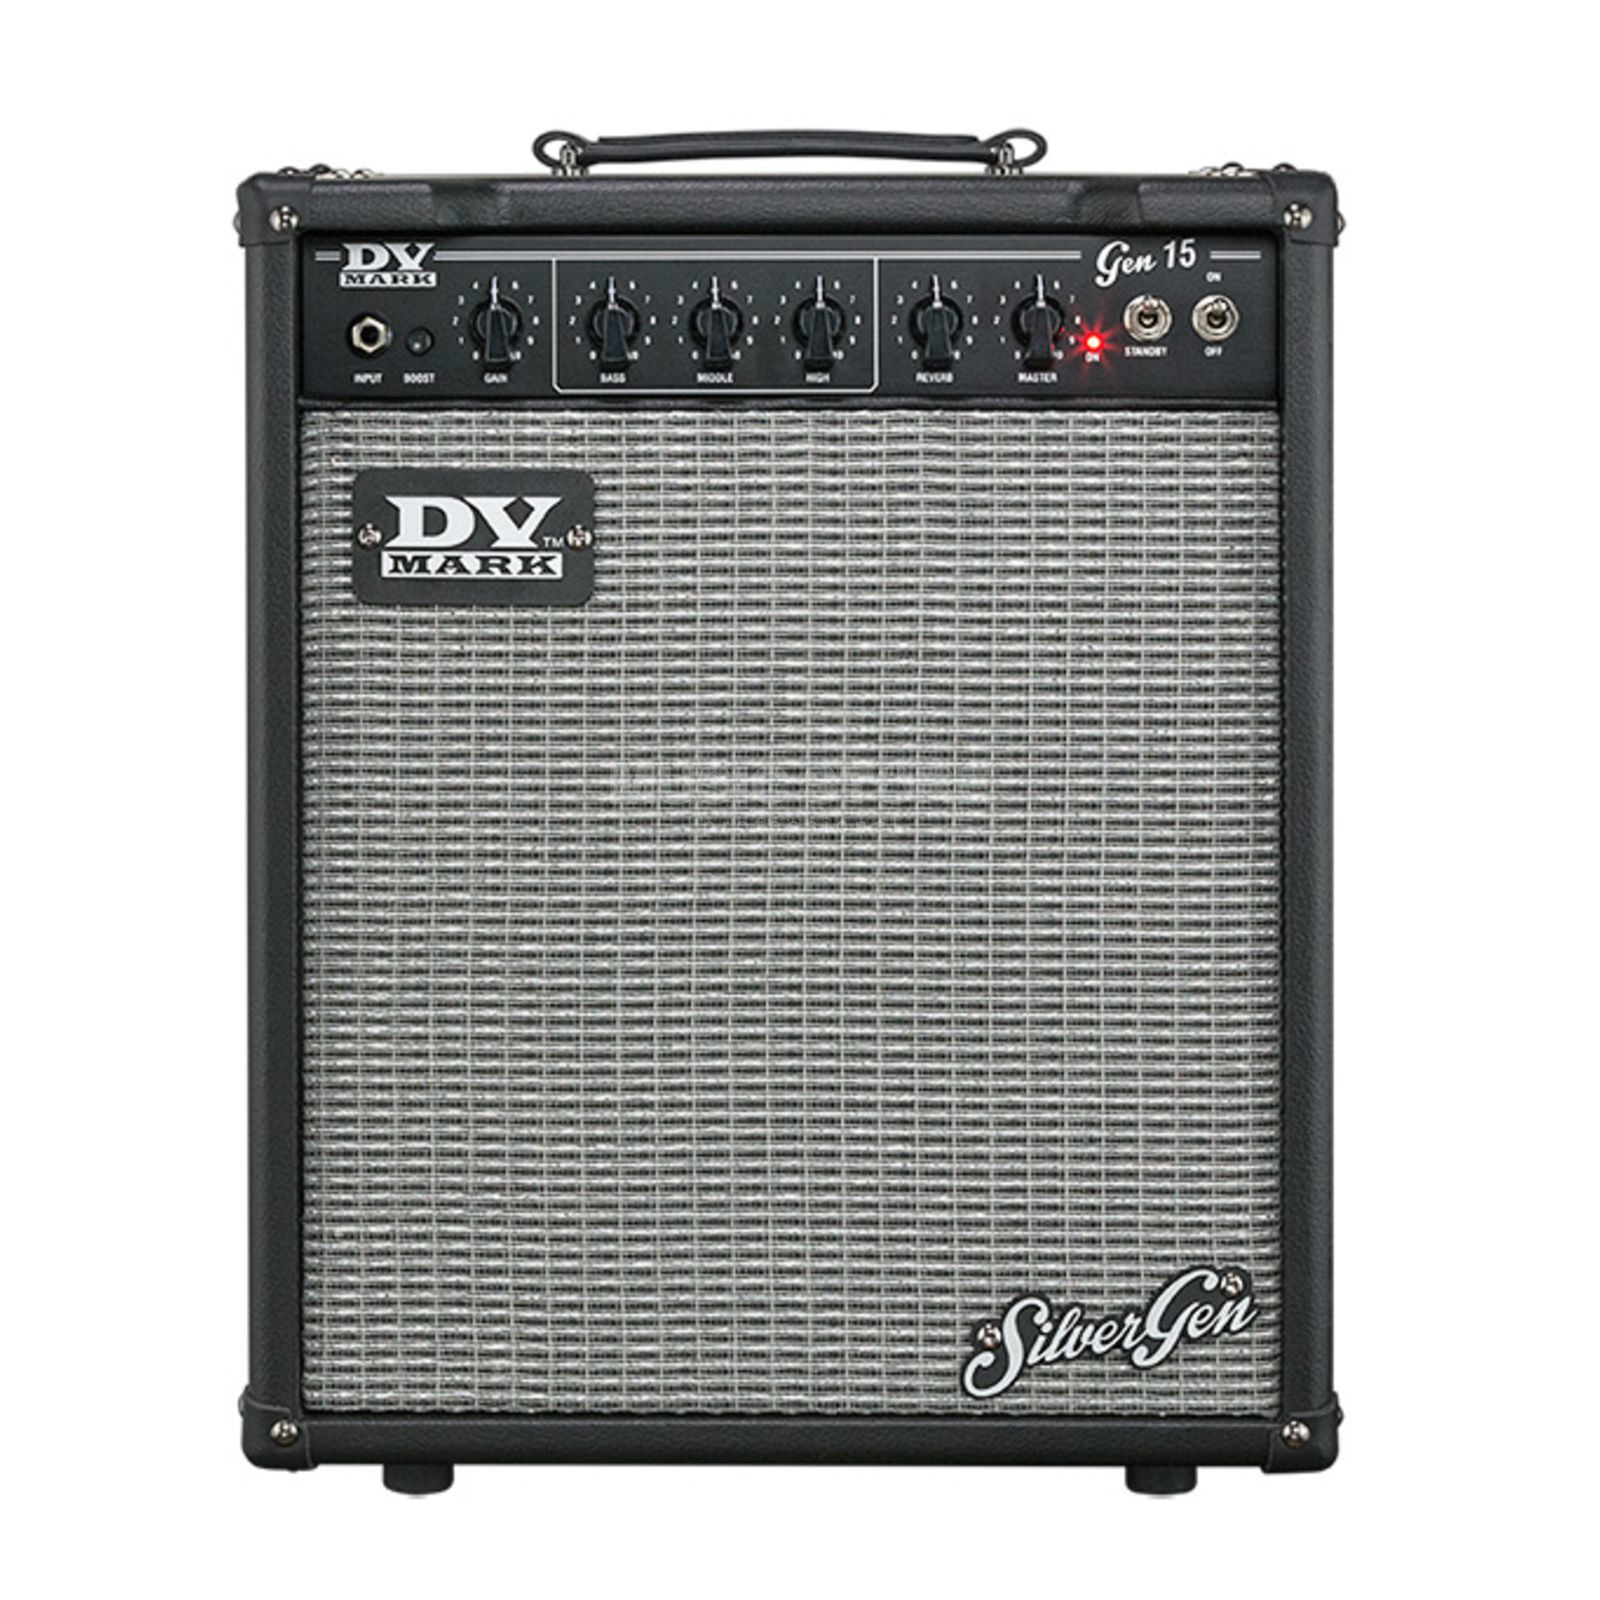 DV Mark DVC Gen 15 All Tube Combo Produktbillede